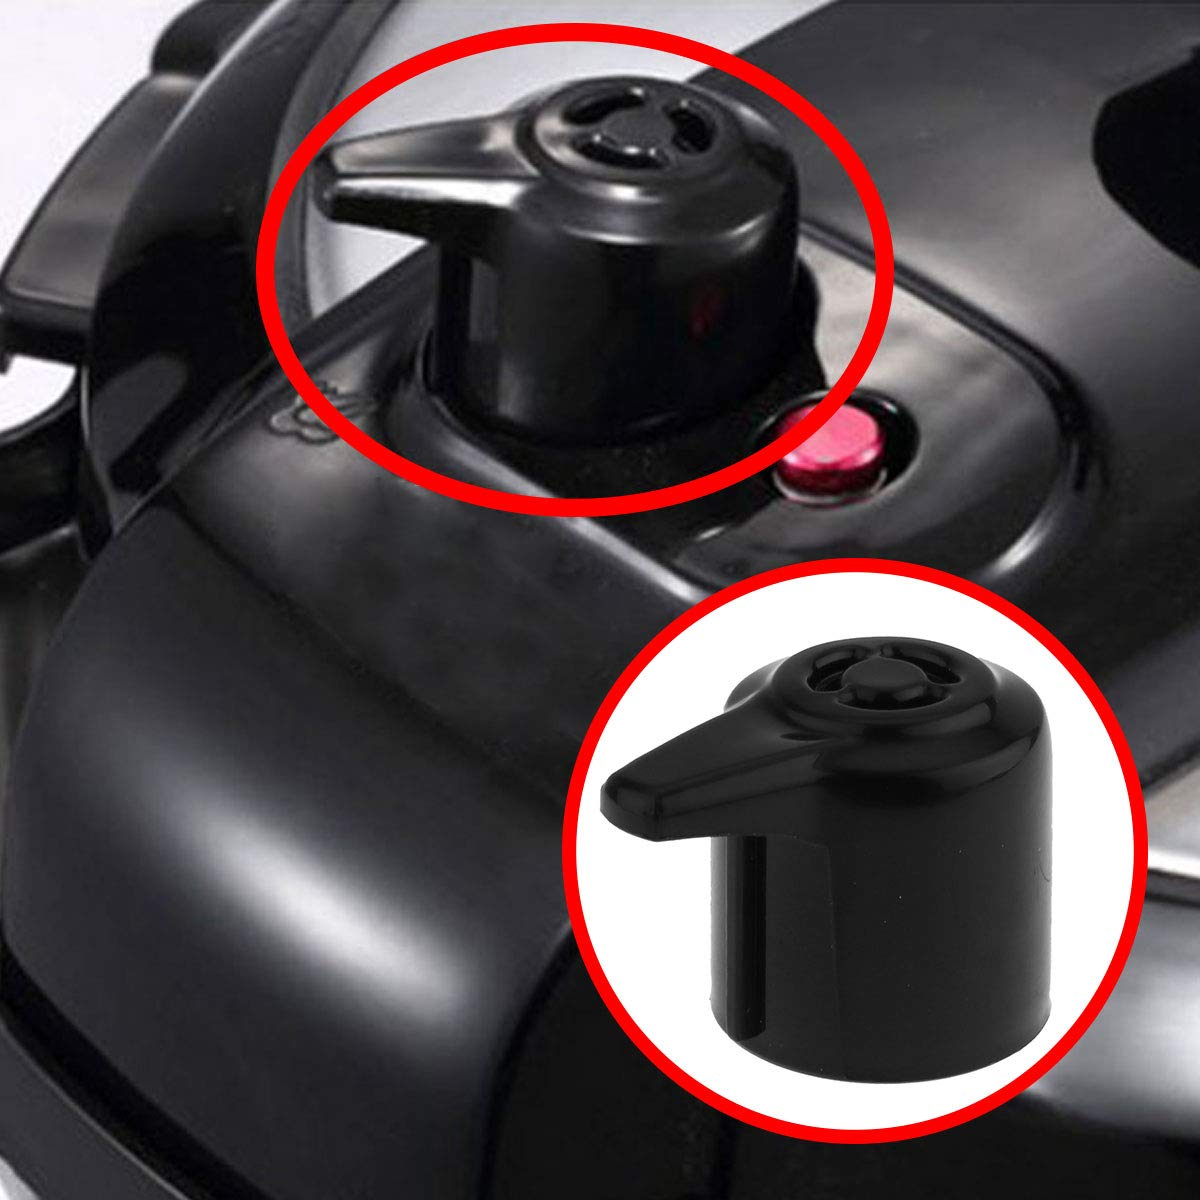 Freebily Steam Release Valve for Instant Pot Duo Mini 3 Qt Duo Plus Mini 3 Qt DUO60 6 Qt and DUO80 8 Qt Programmable Pressure Cooker Black One Size by Freebily (Image #2)